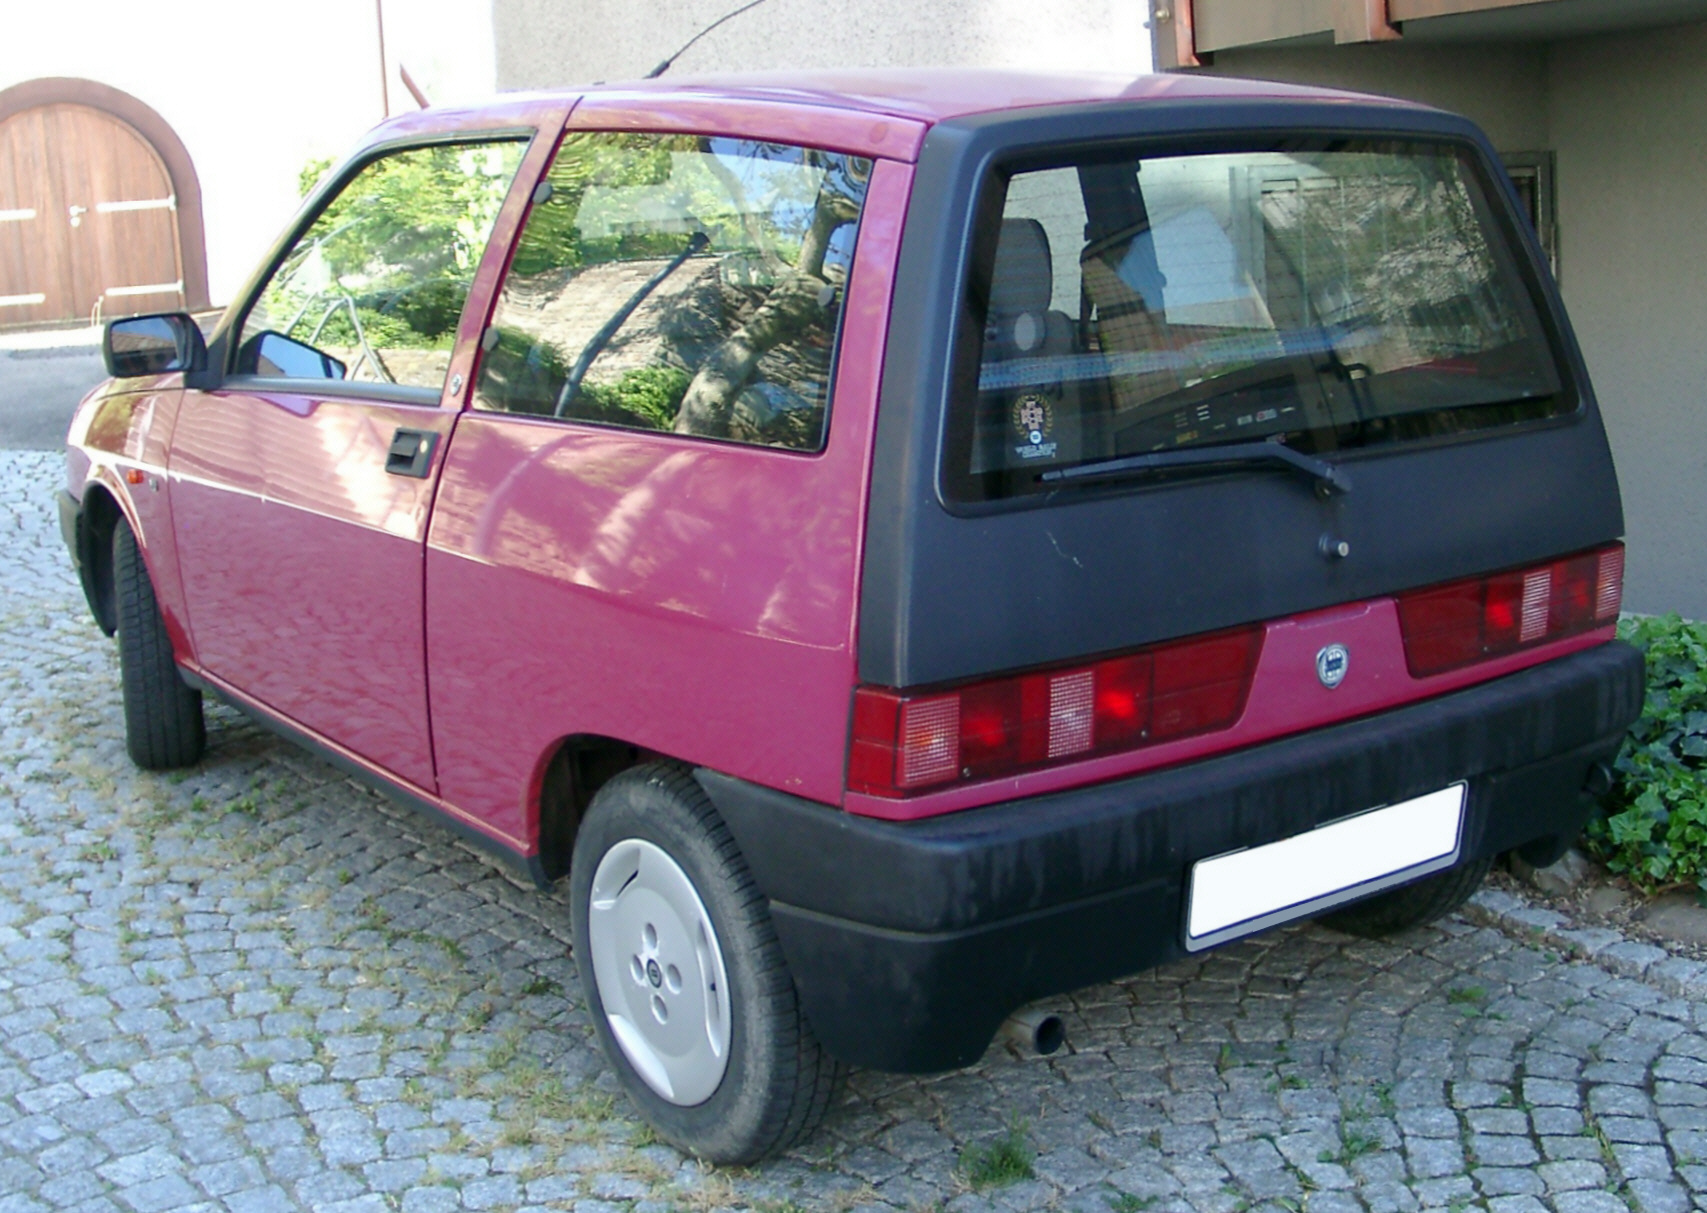 File:Lancia Y10 rear 20070502.jpg - Wikimedia Commons